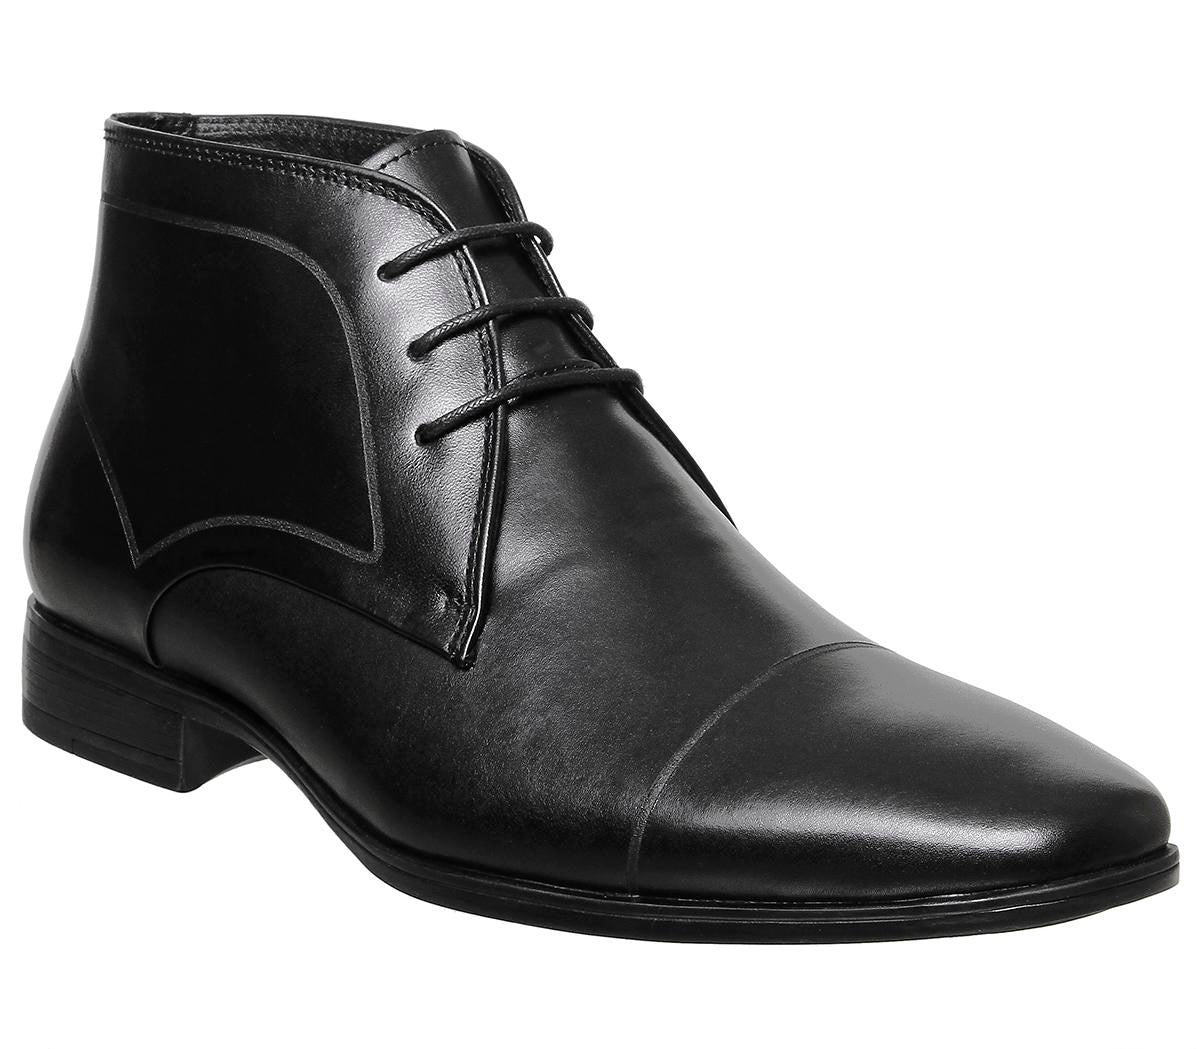 OFFCUTS SHOES by OFFICE